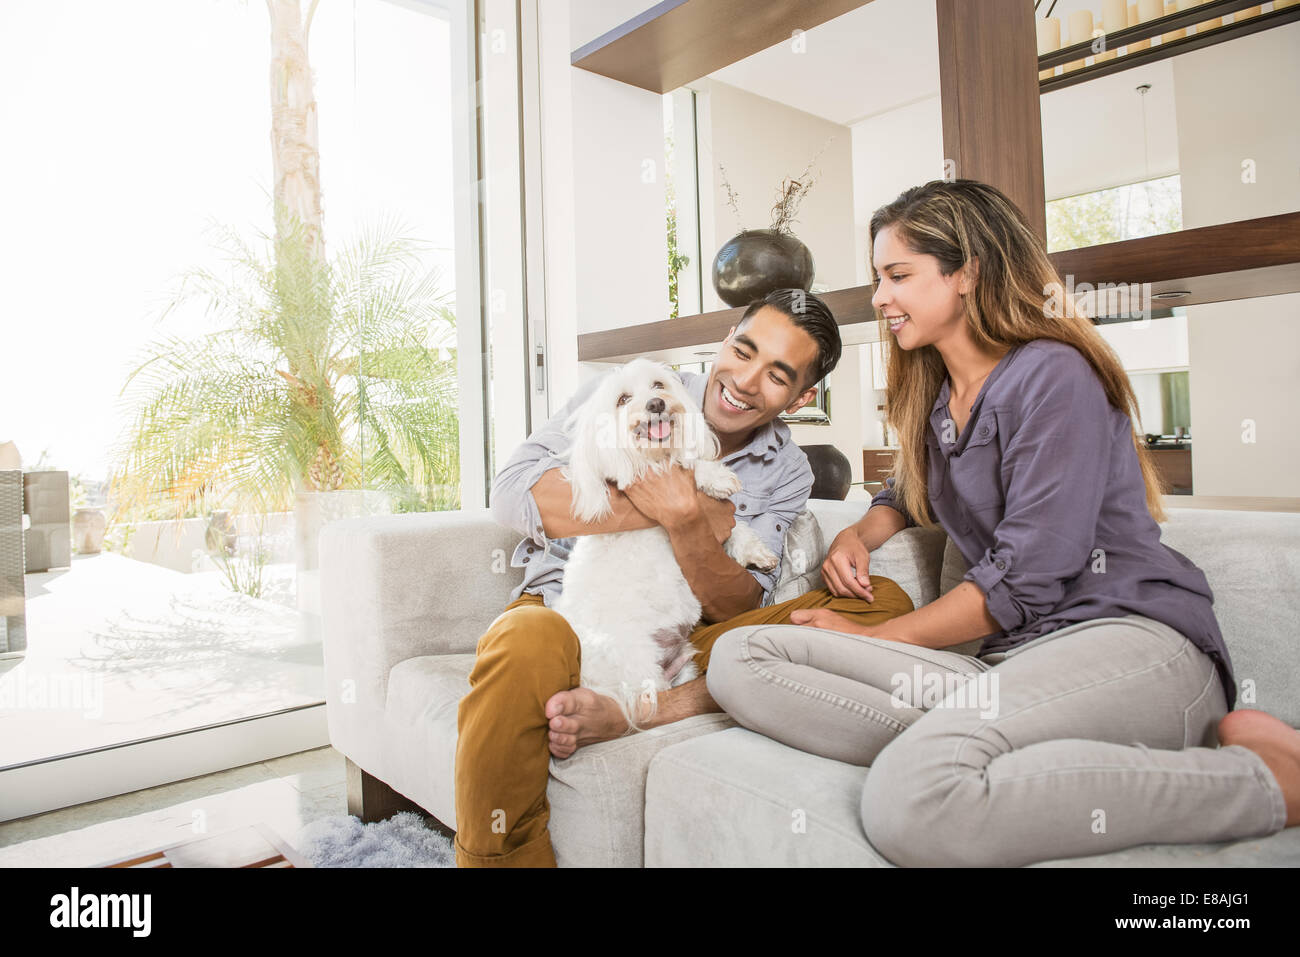 Couple petting cute dog on sitting room sofa - Stock Image